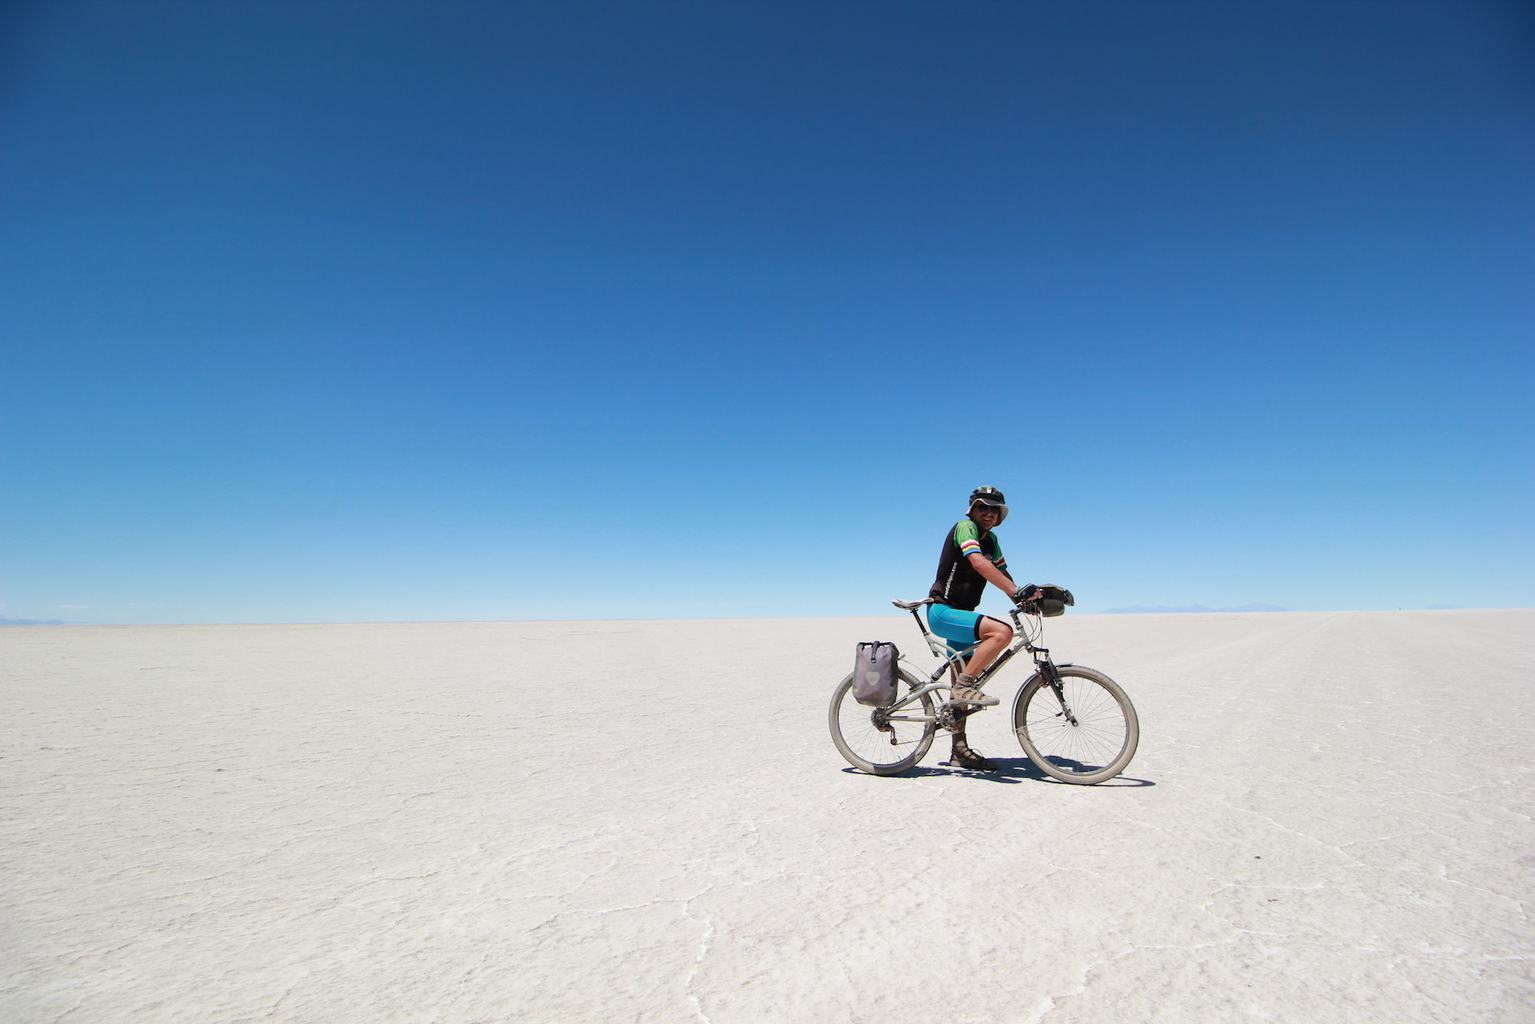 Bizarre & Barren: Cycling the Salt Flats